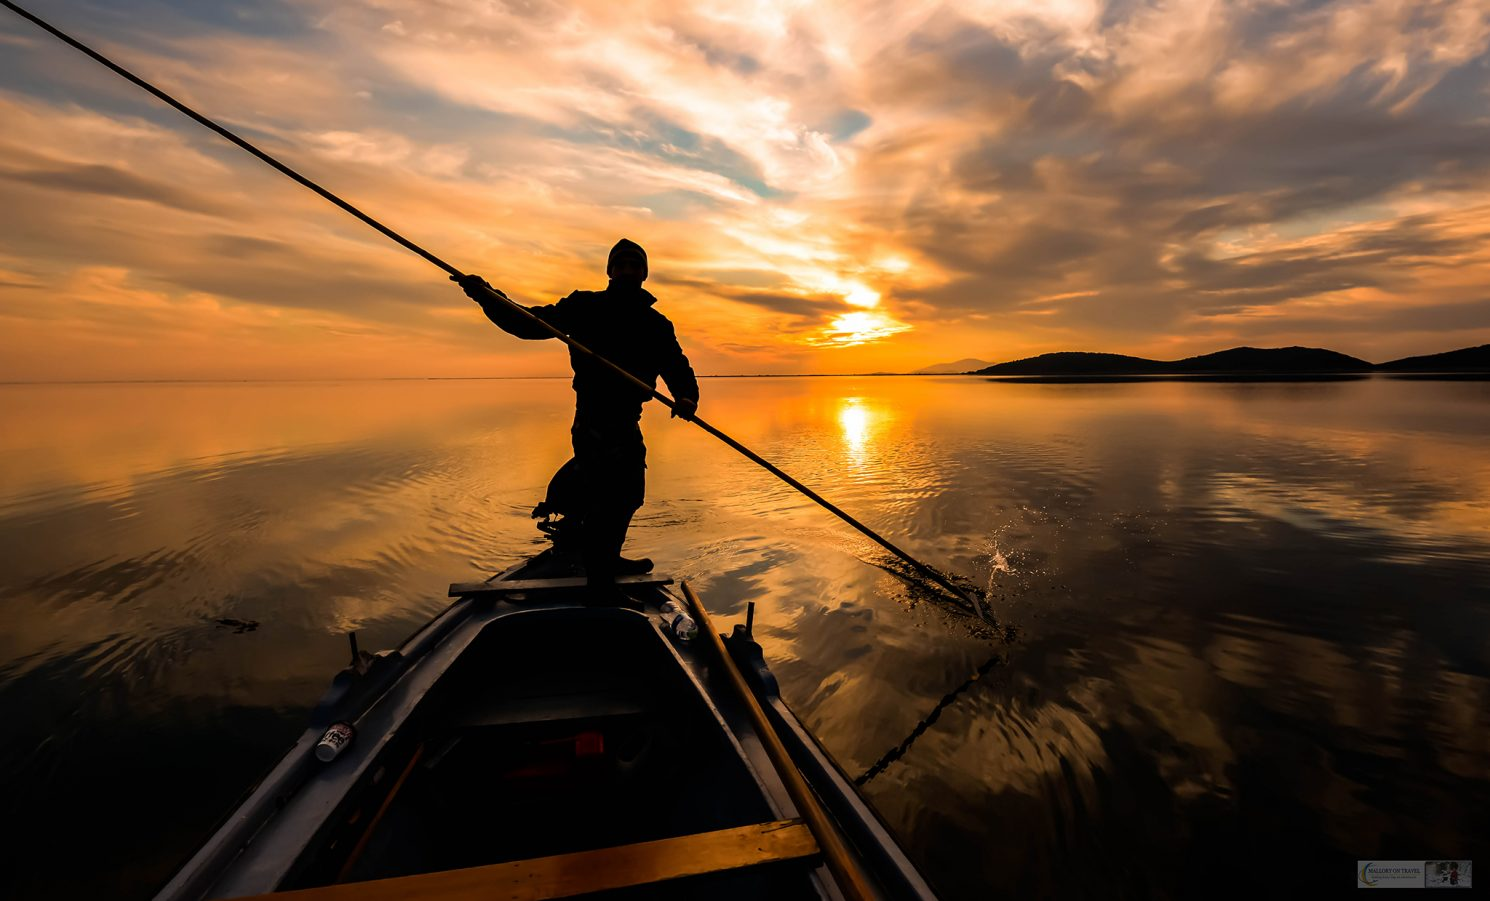 Travel inspiration; A fisherman in the Messolonghi Lagoon of western Greece on Mallory on Travel adventure travel, photography, travel Iain Mallory_Greece8384-163